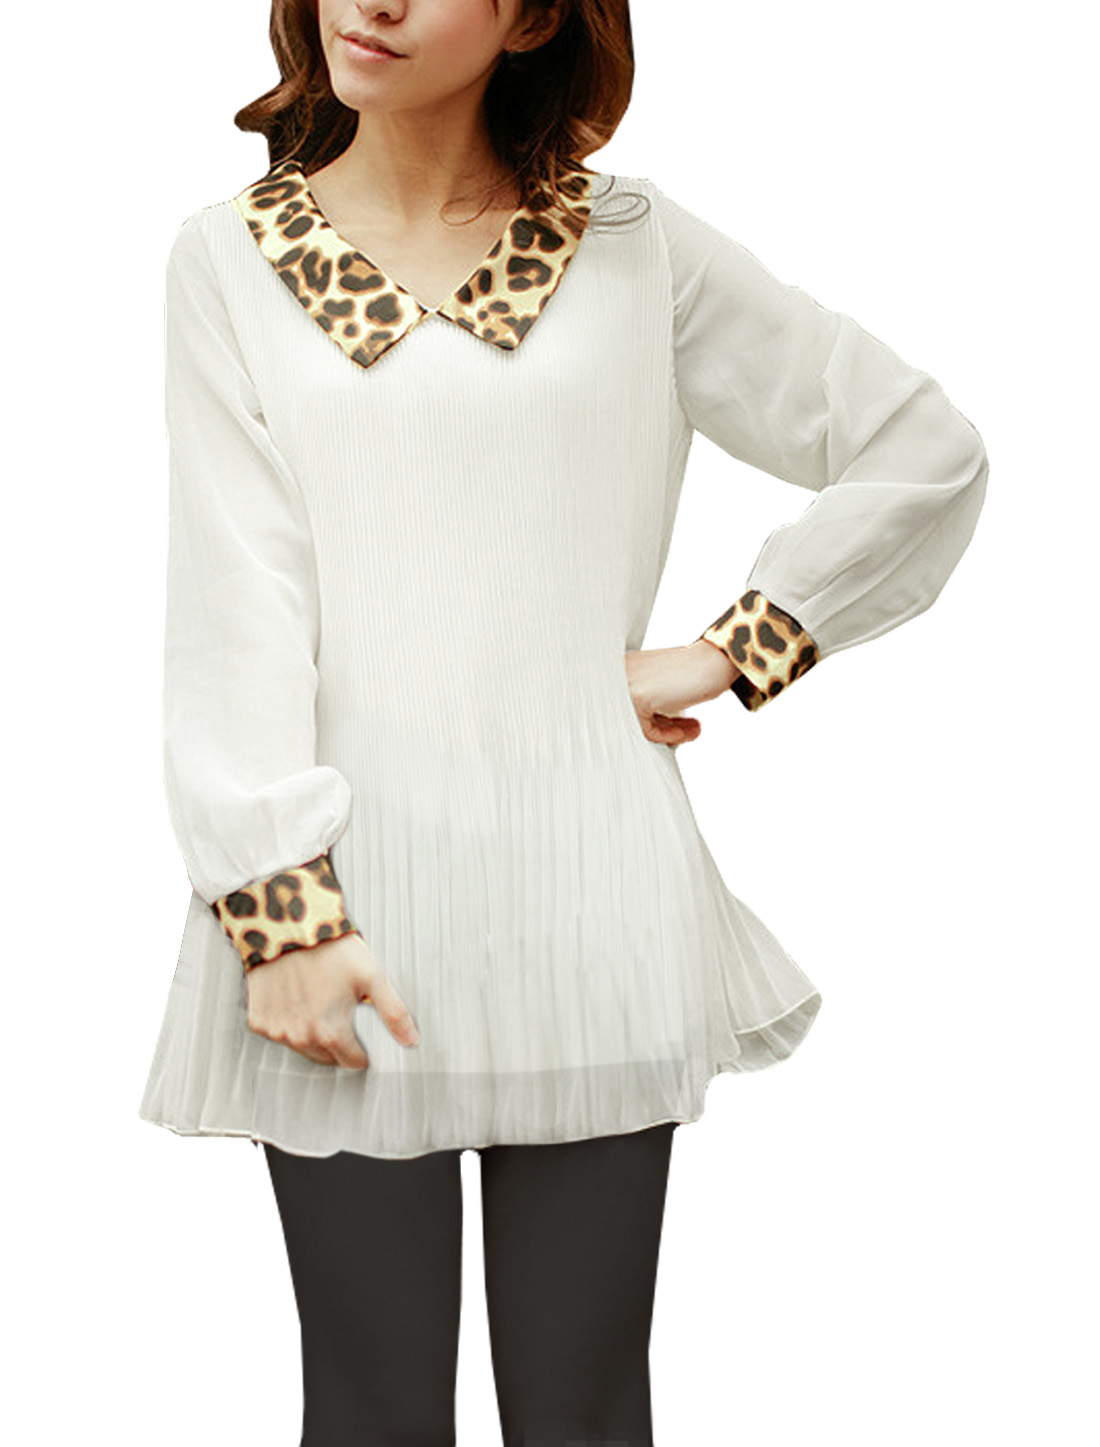 Ladies Leopard Print Collar White Accordion Pleats Tunic Blouse S